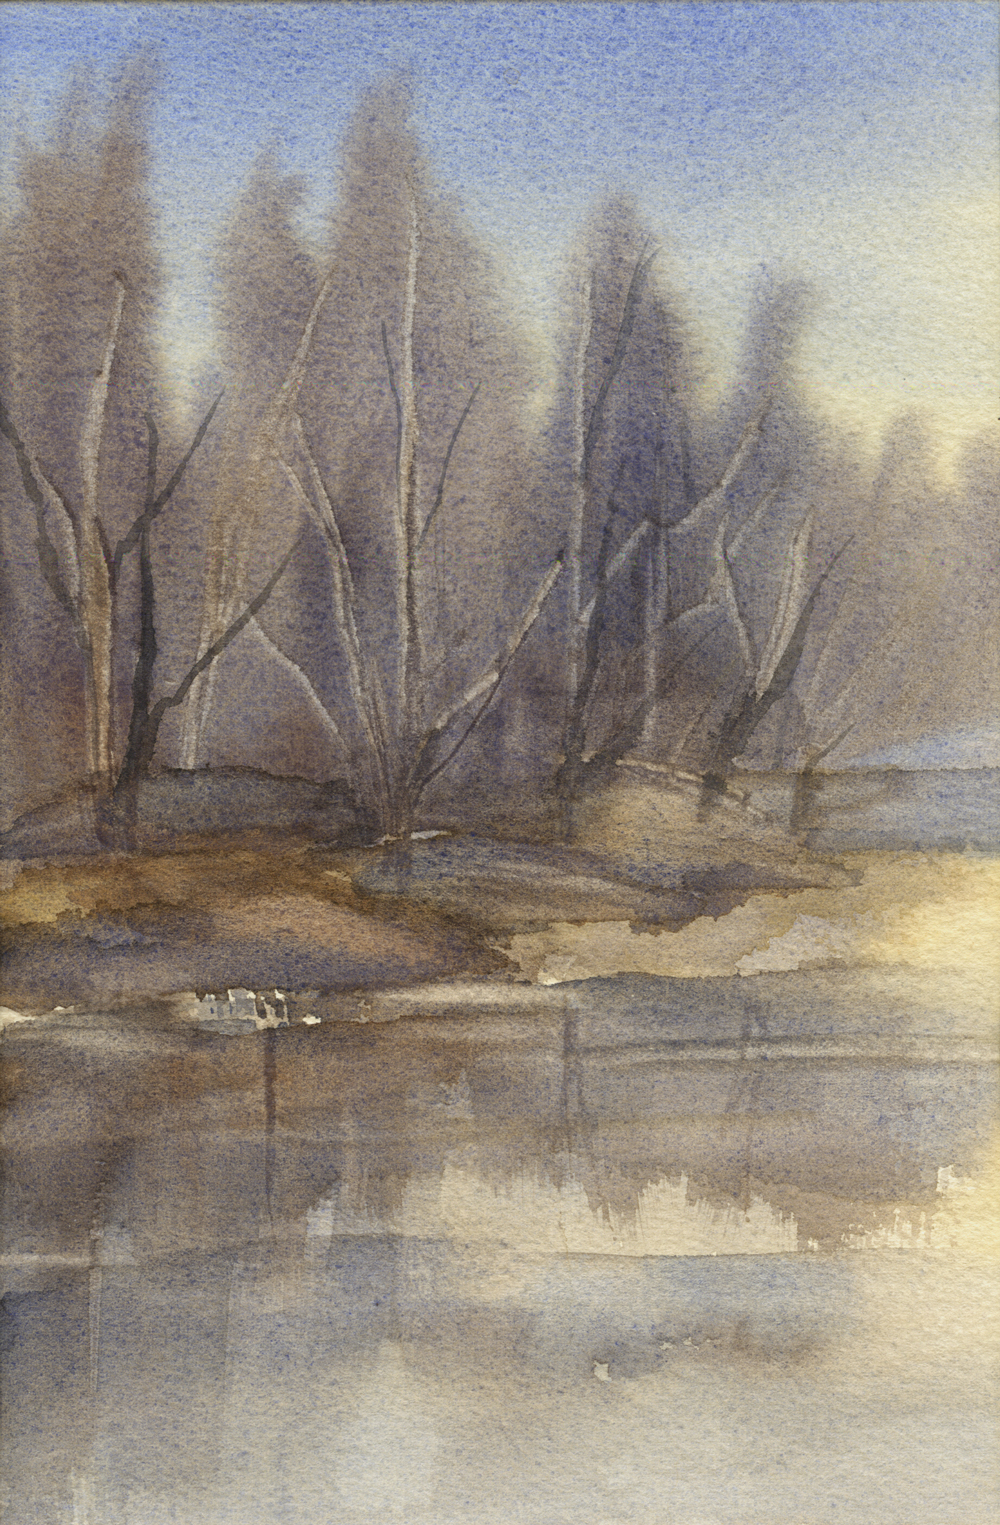 Mary Licause, Winter Refuge, watercolor, 6 x 9 in.